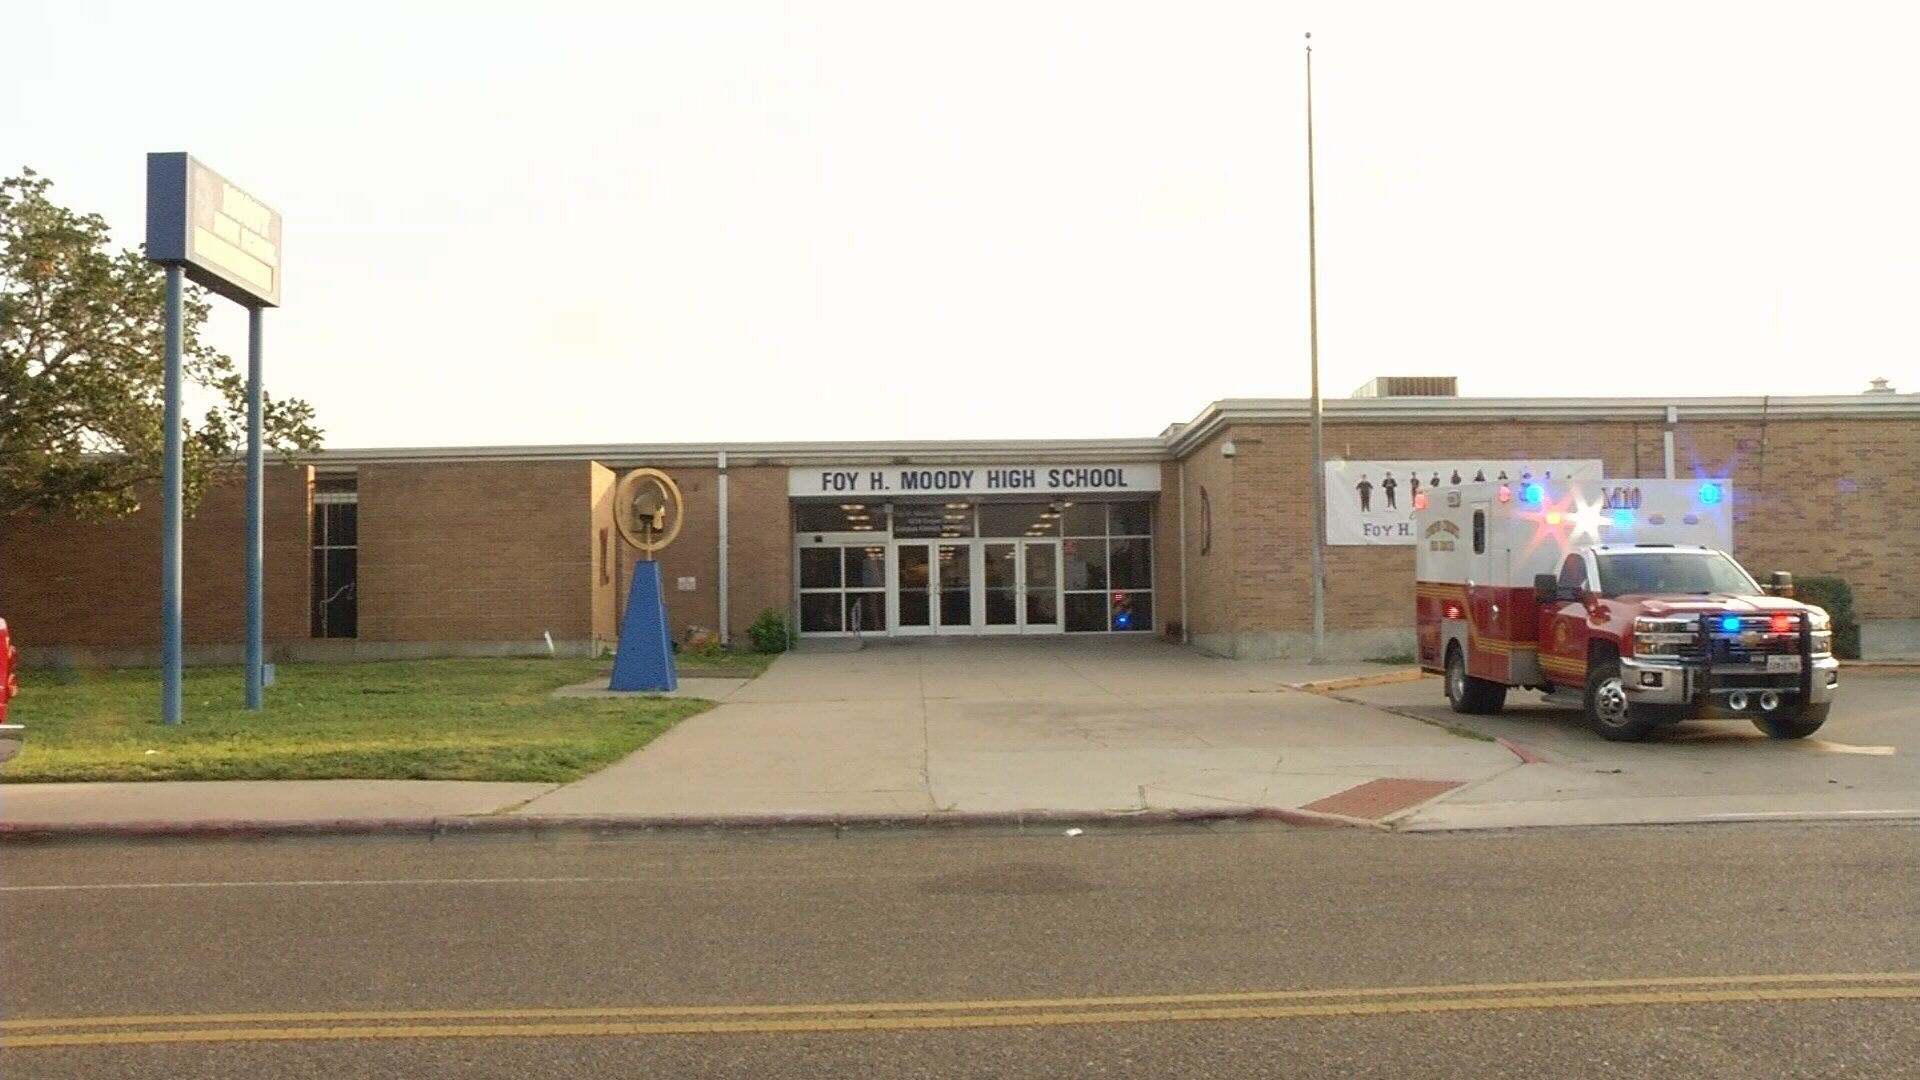 A CCISD Security Officer found a young boy hiding inside a Moody High School restroom Thursday morning.